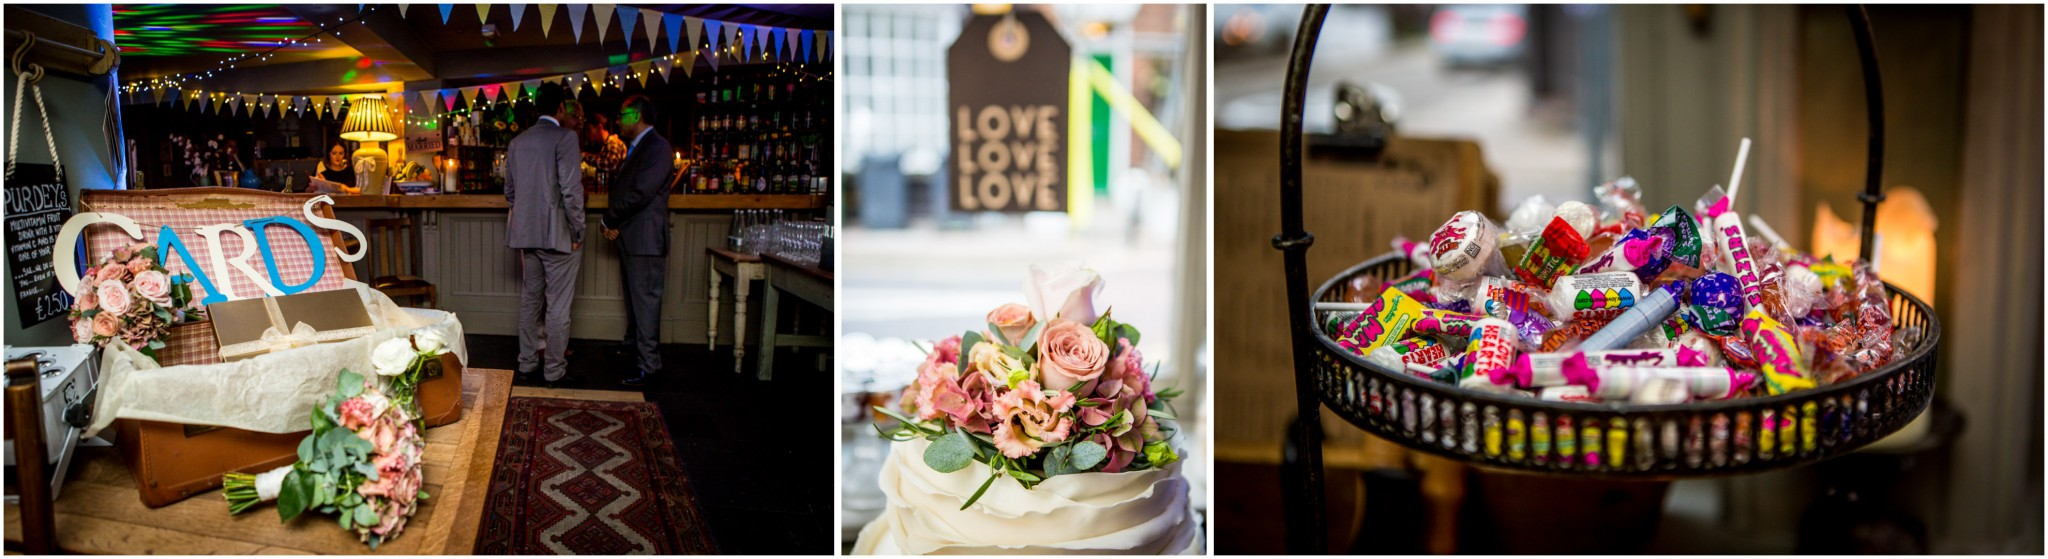 winchester-basing-room-wedding-photography-044